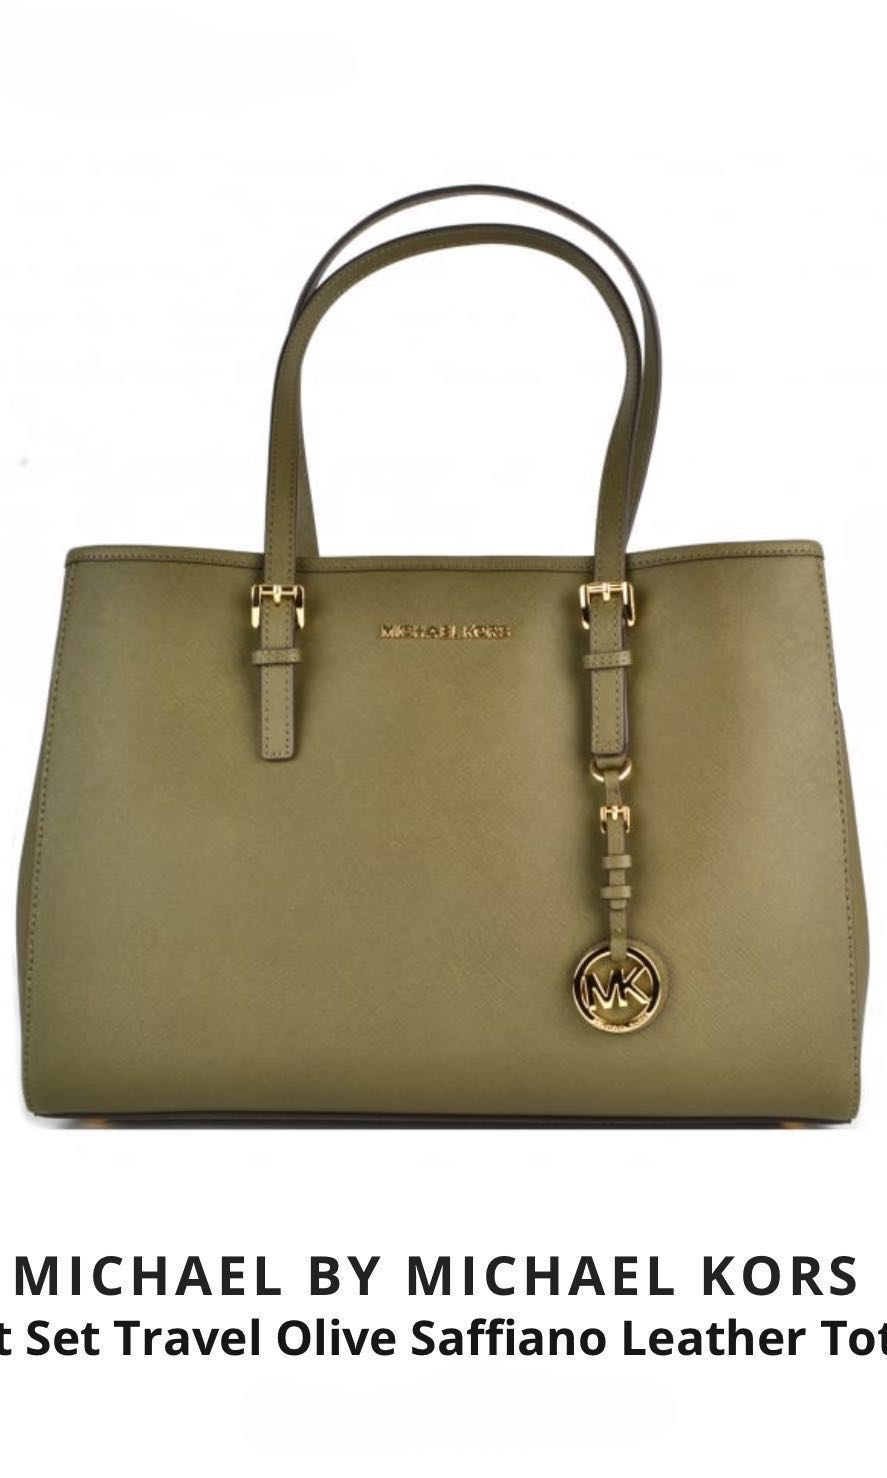 62a1dada7770bf Michael Kors Jet Set Travel Olive Saffiano Leather Tote, Women's ...